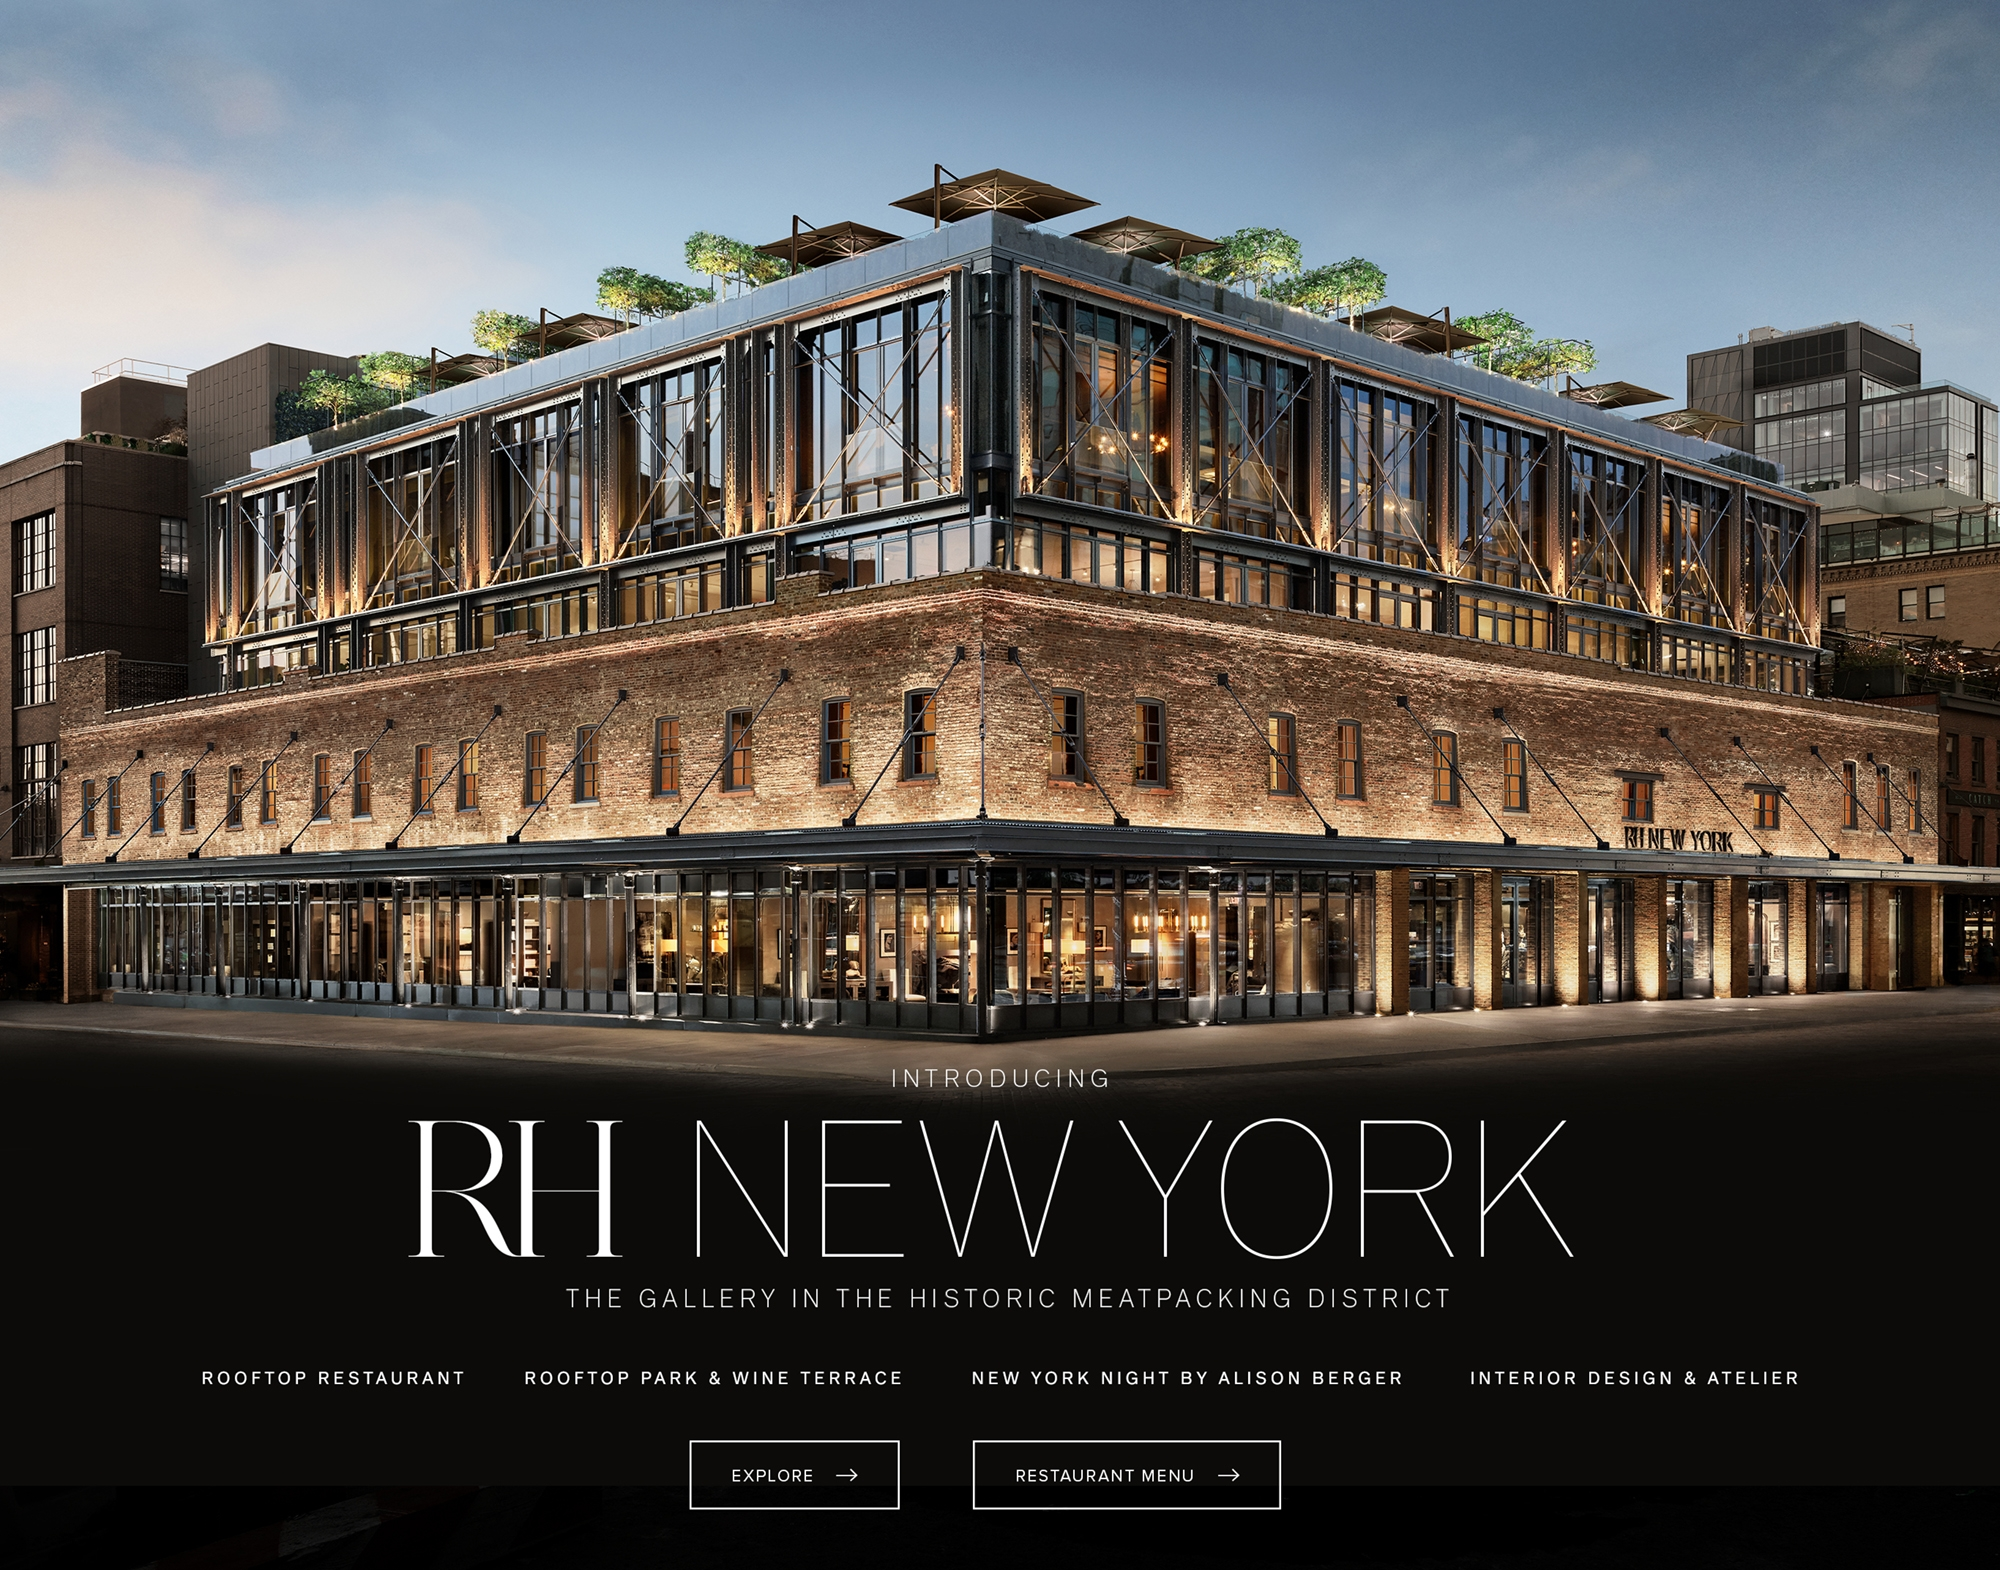 RH New York - The Gallery in the Historic Meatpacking District